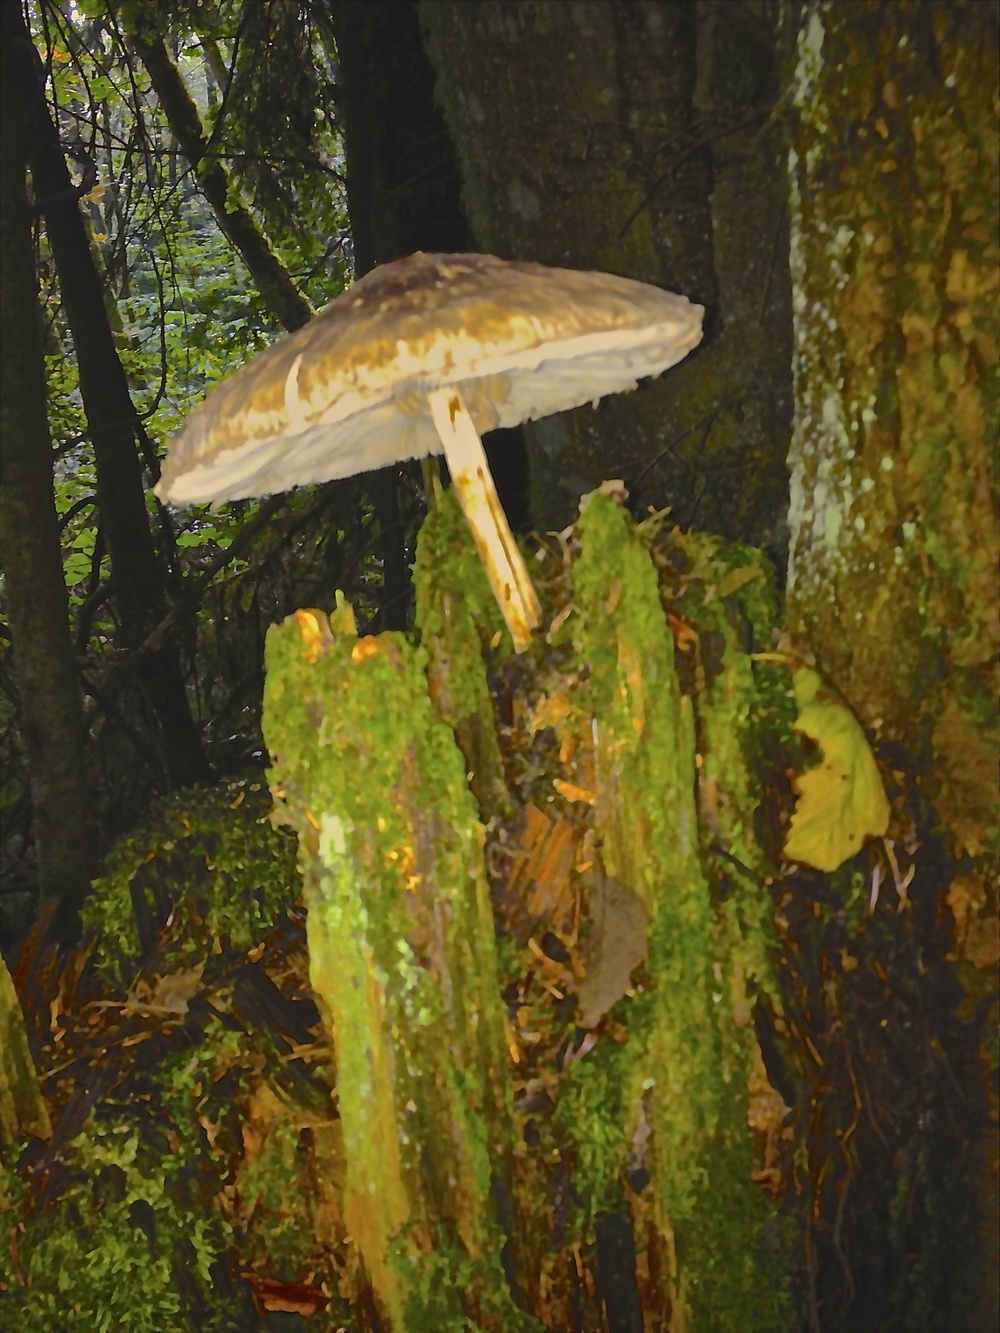 I find my friends,The Pixies,here in jaggedy rotted out trees under the canopy of mushroom umbrellas.